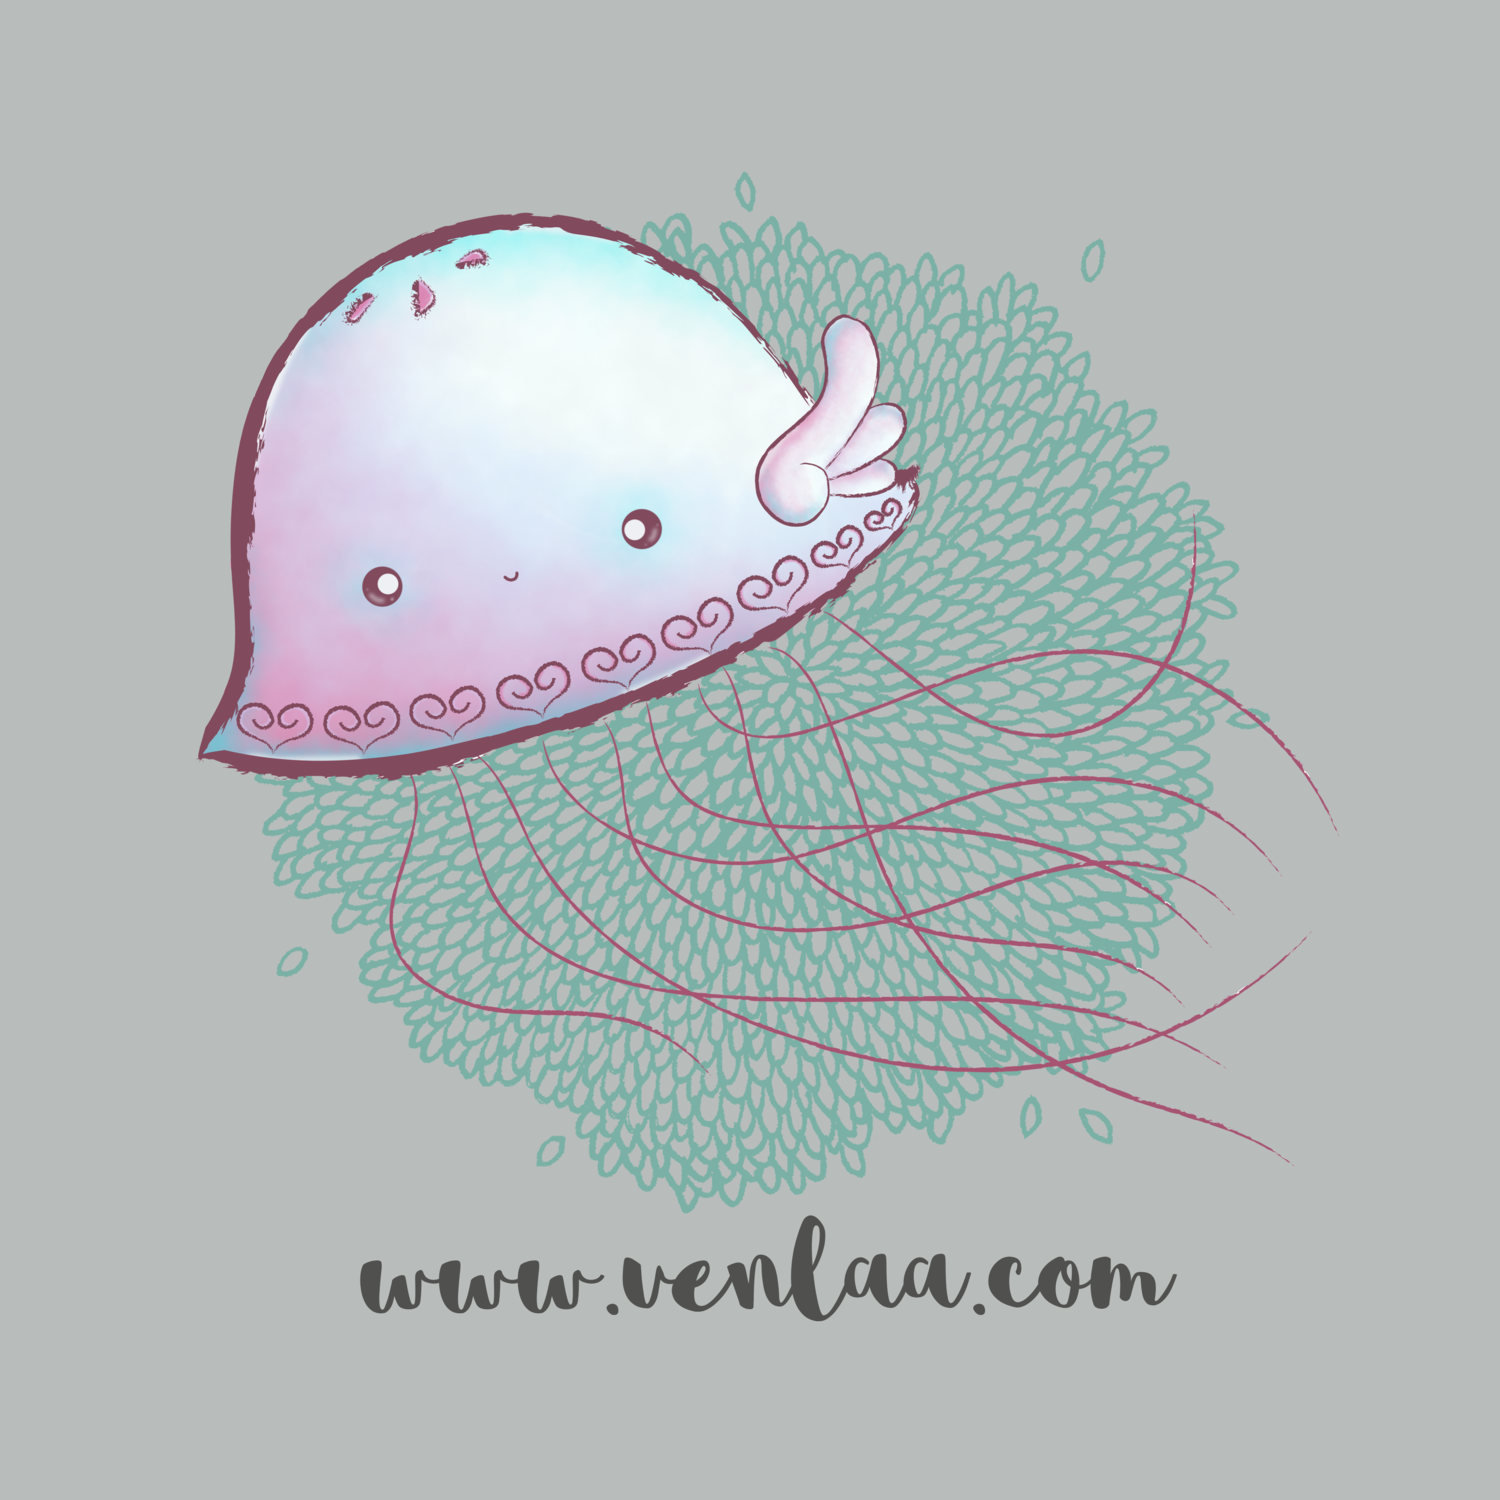 jellyfish-background.png